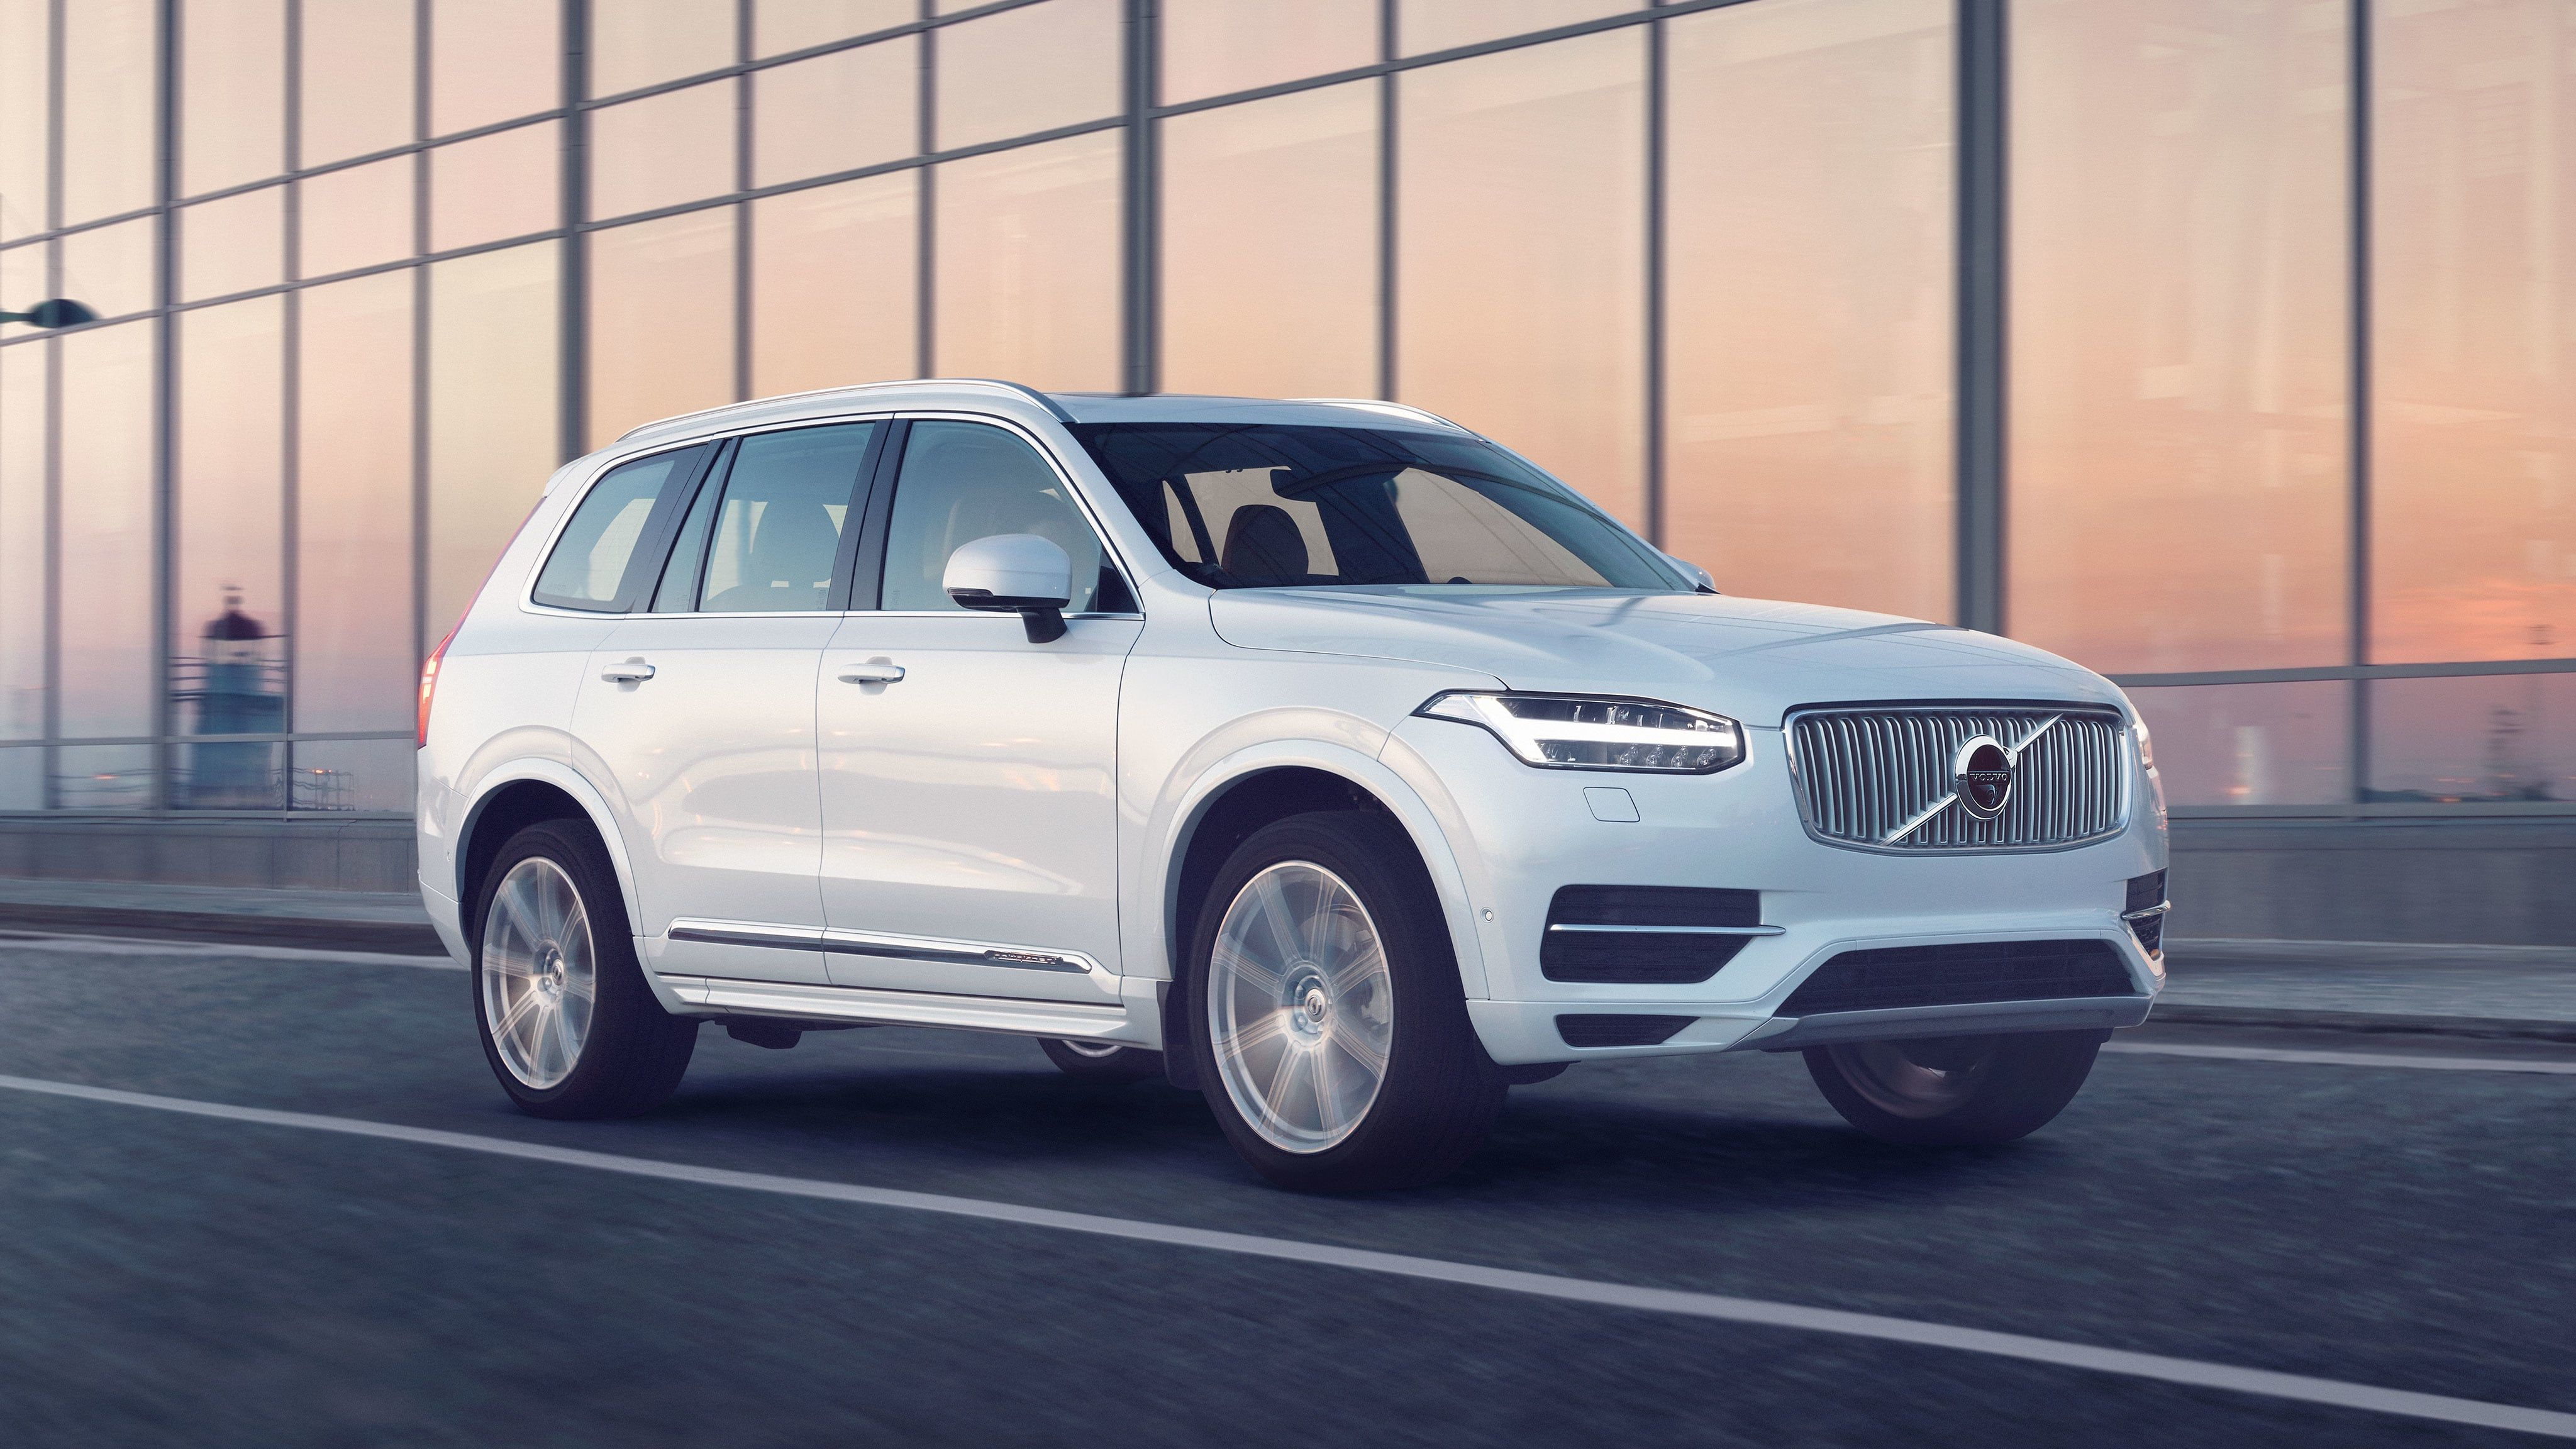 suv petrol car from hybrid more india engine news twin plug the new driven excellence in launched volvo tarragona world motoring